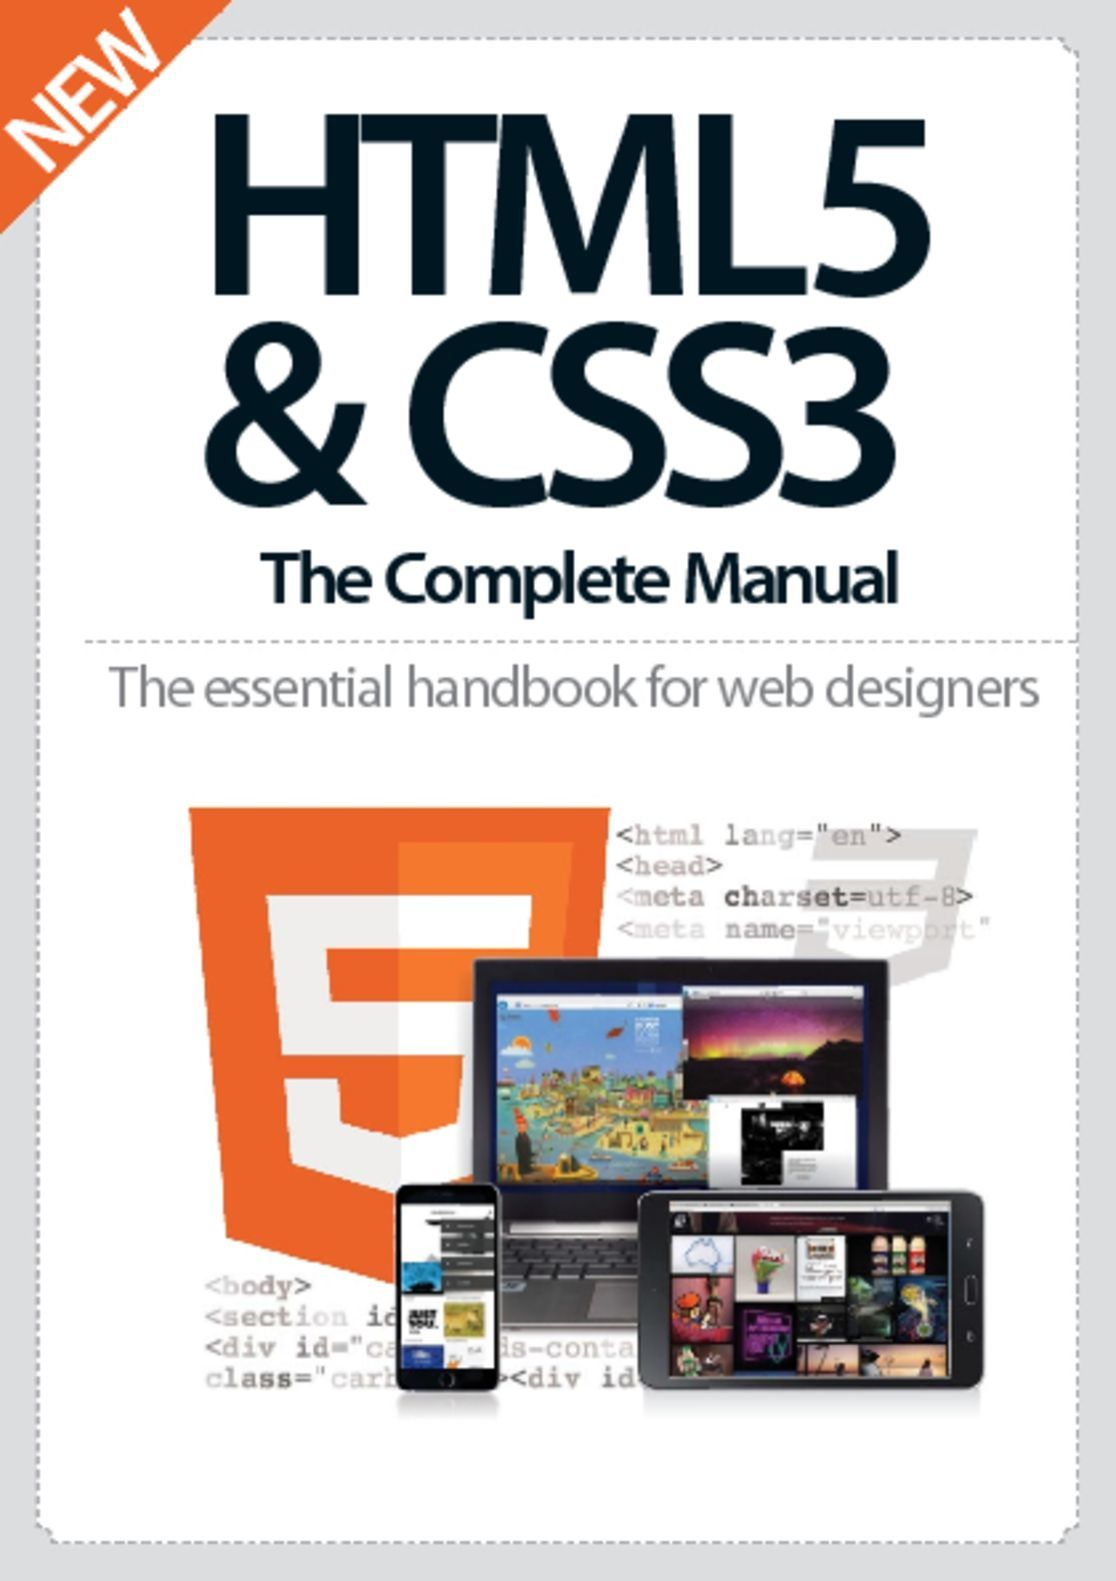 HTML5 & CSS3 The Complete Manual (Digital)